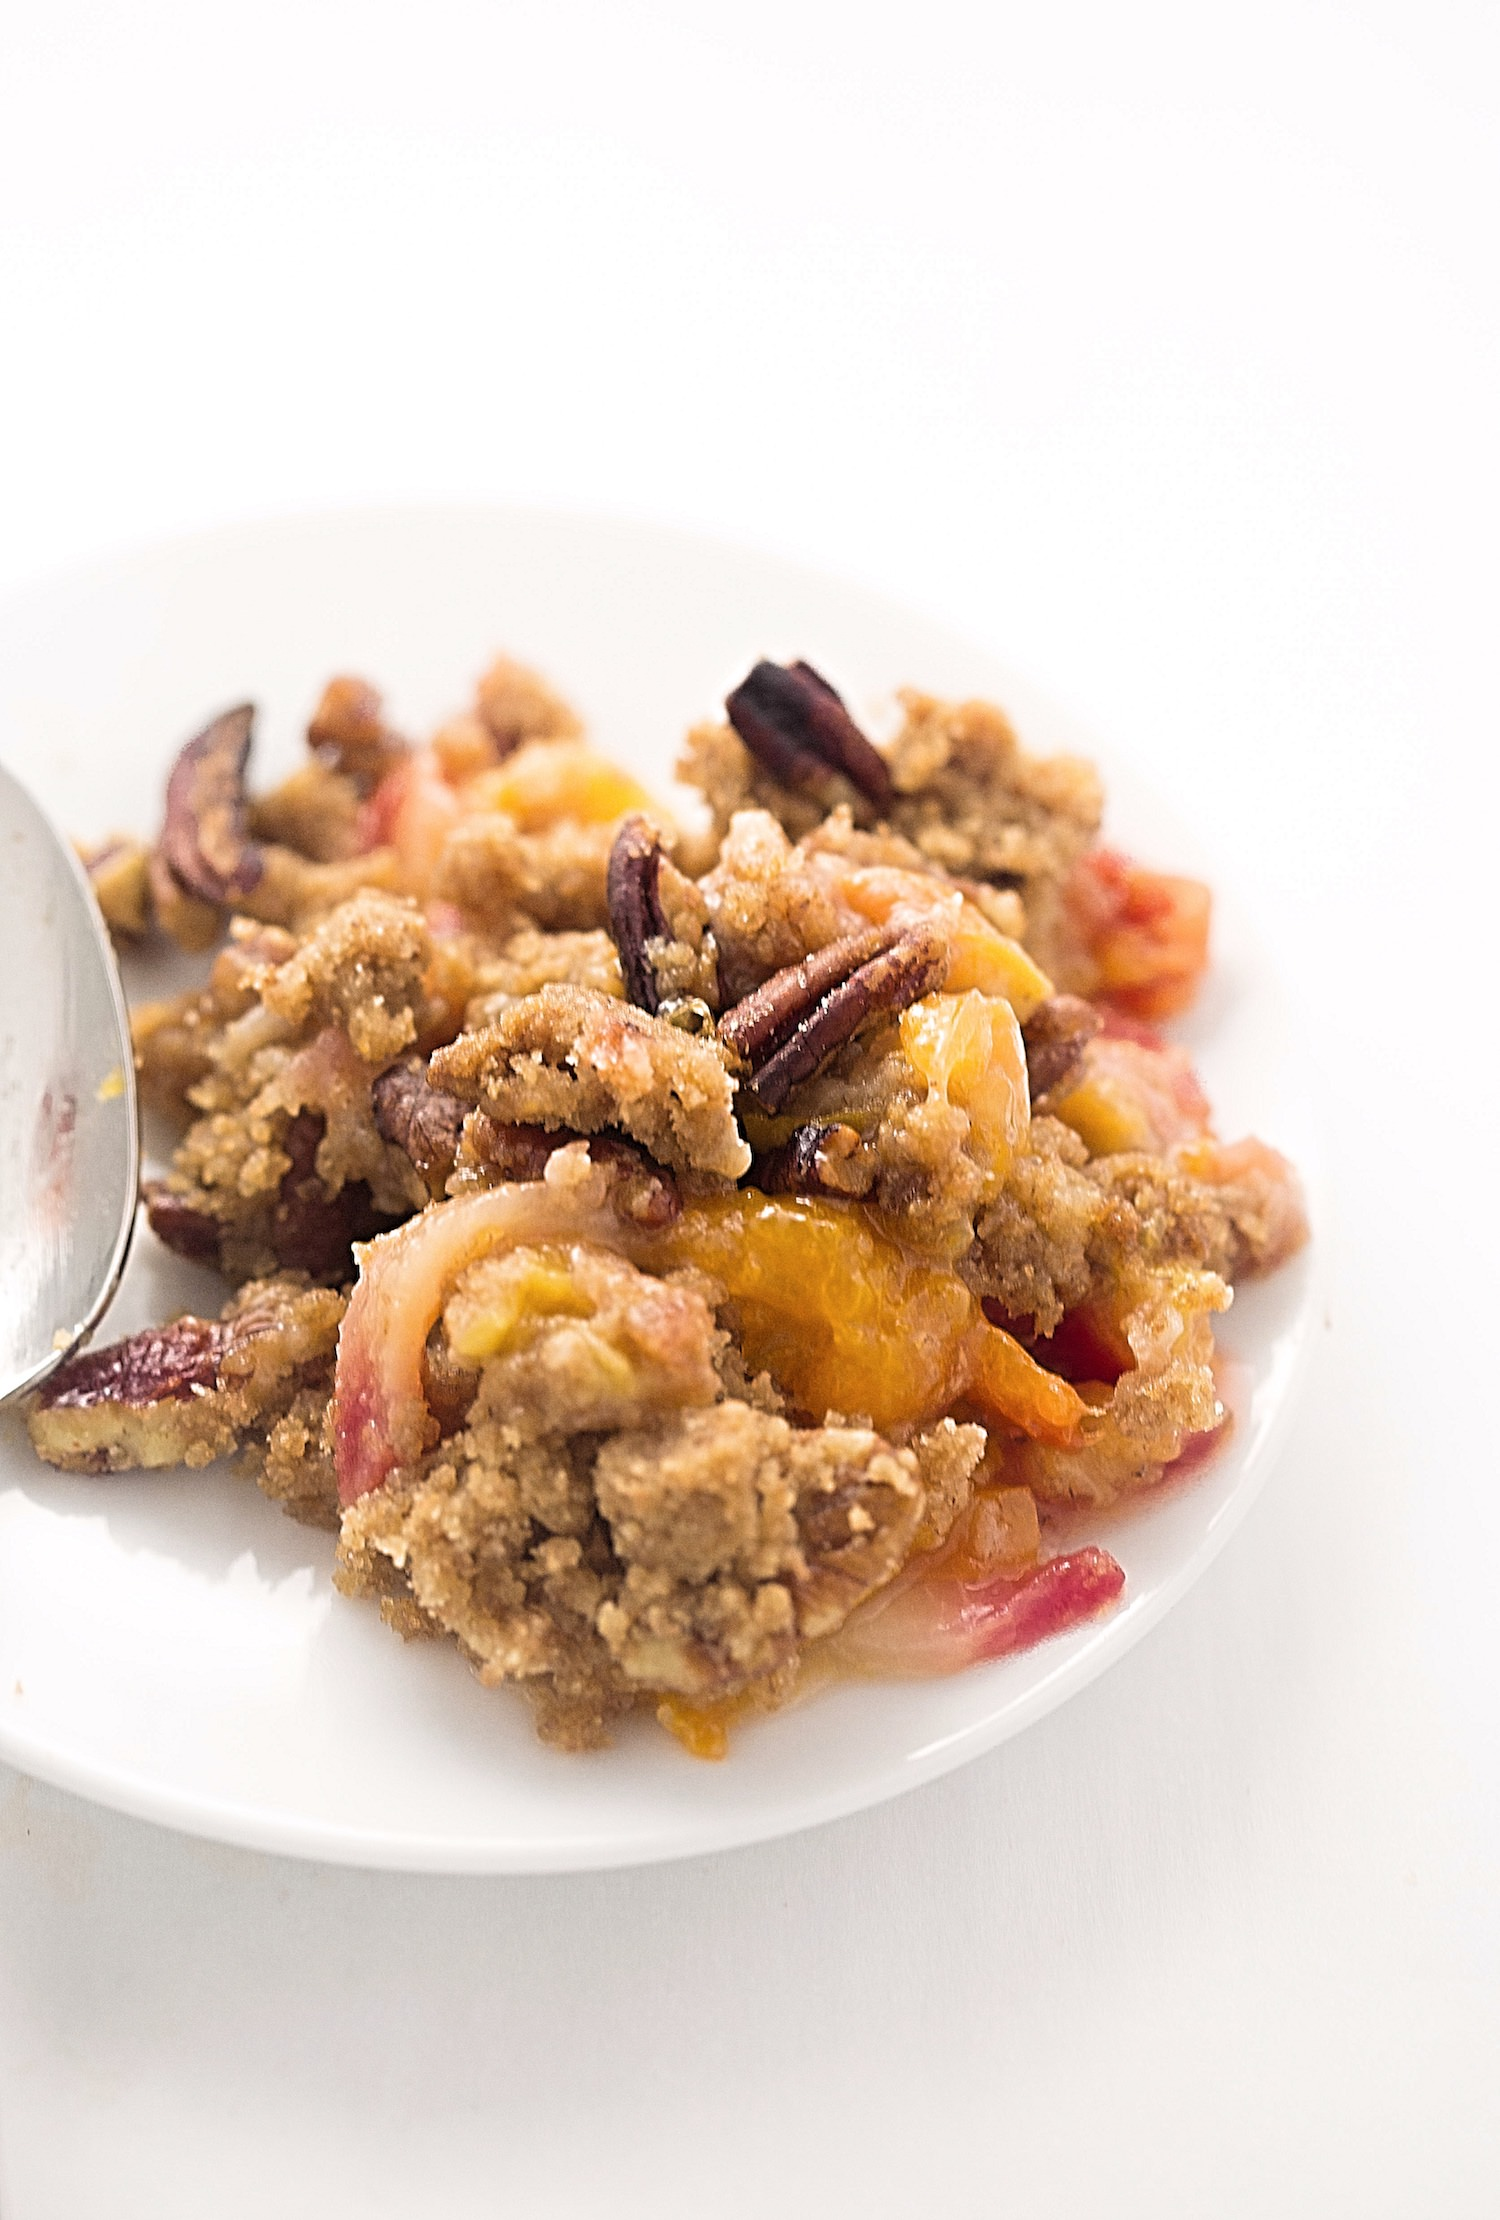 Whole Wheat Summer Fruit Crumble: juicy, tart, sweet summer fruits generously topped with a tasty whole-wheat crumble. | TrufflesandTrends.com